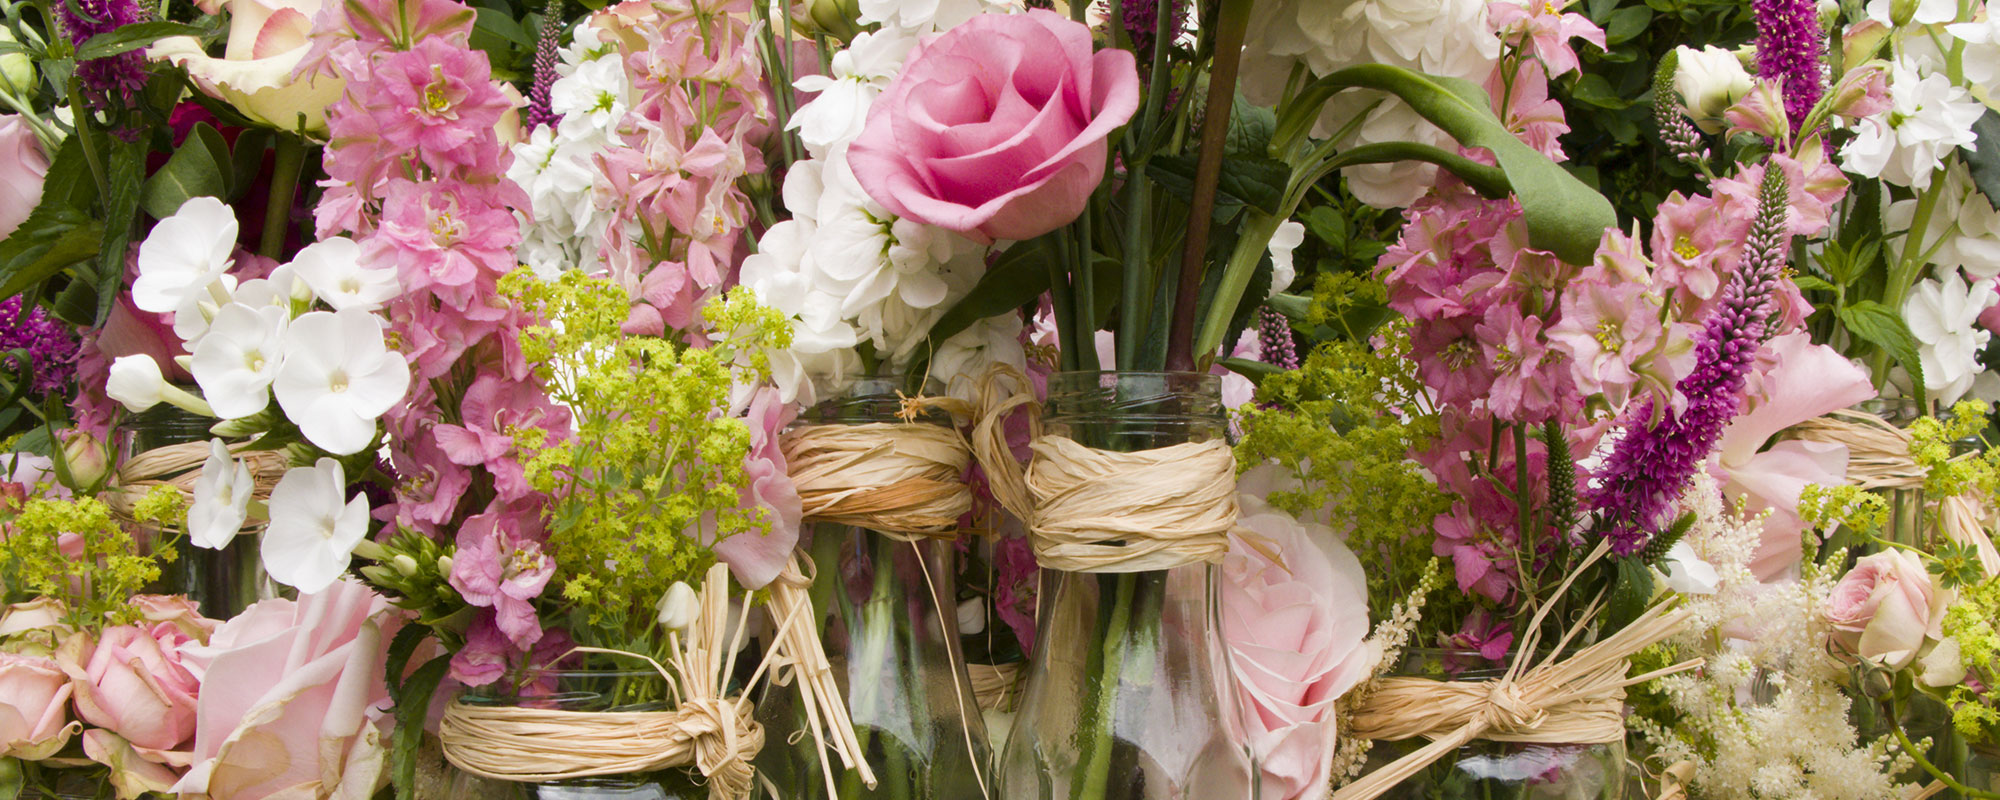 The Floral Artisan Flower Jars